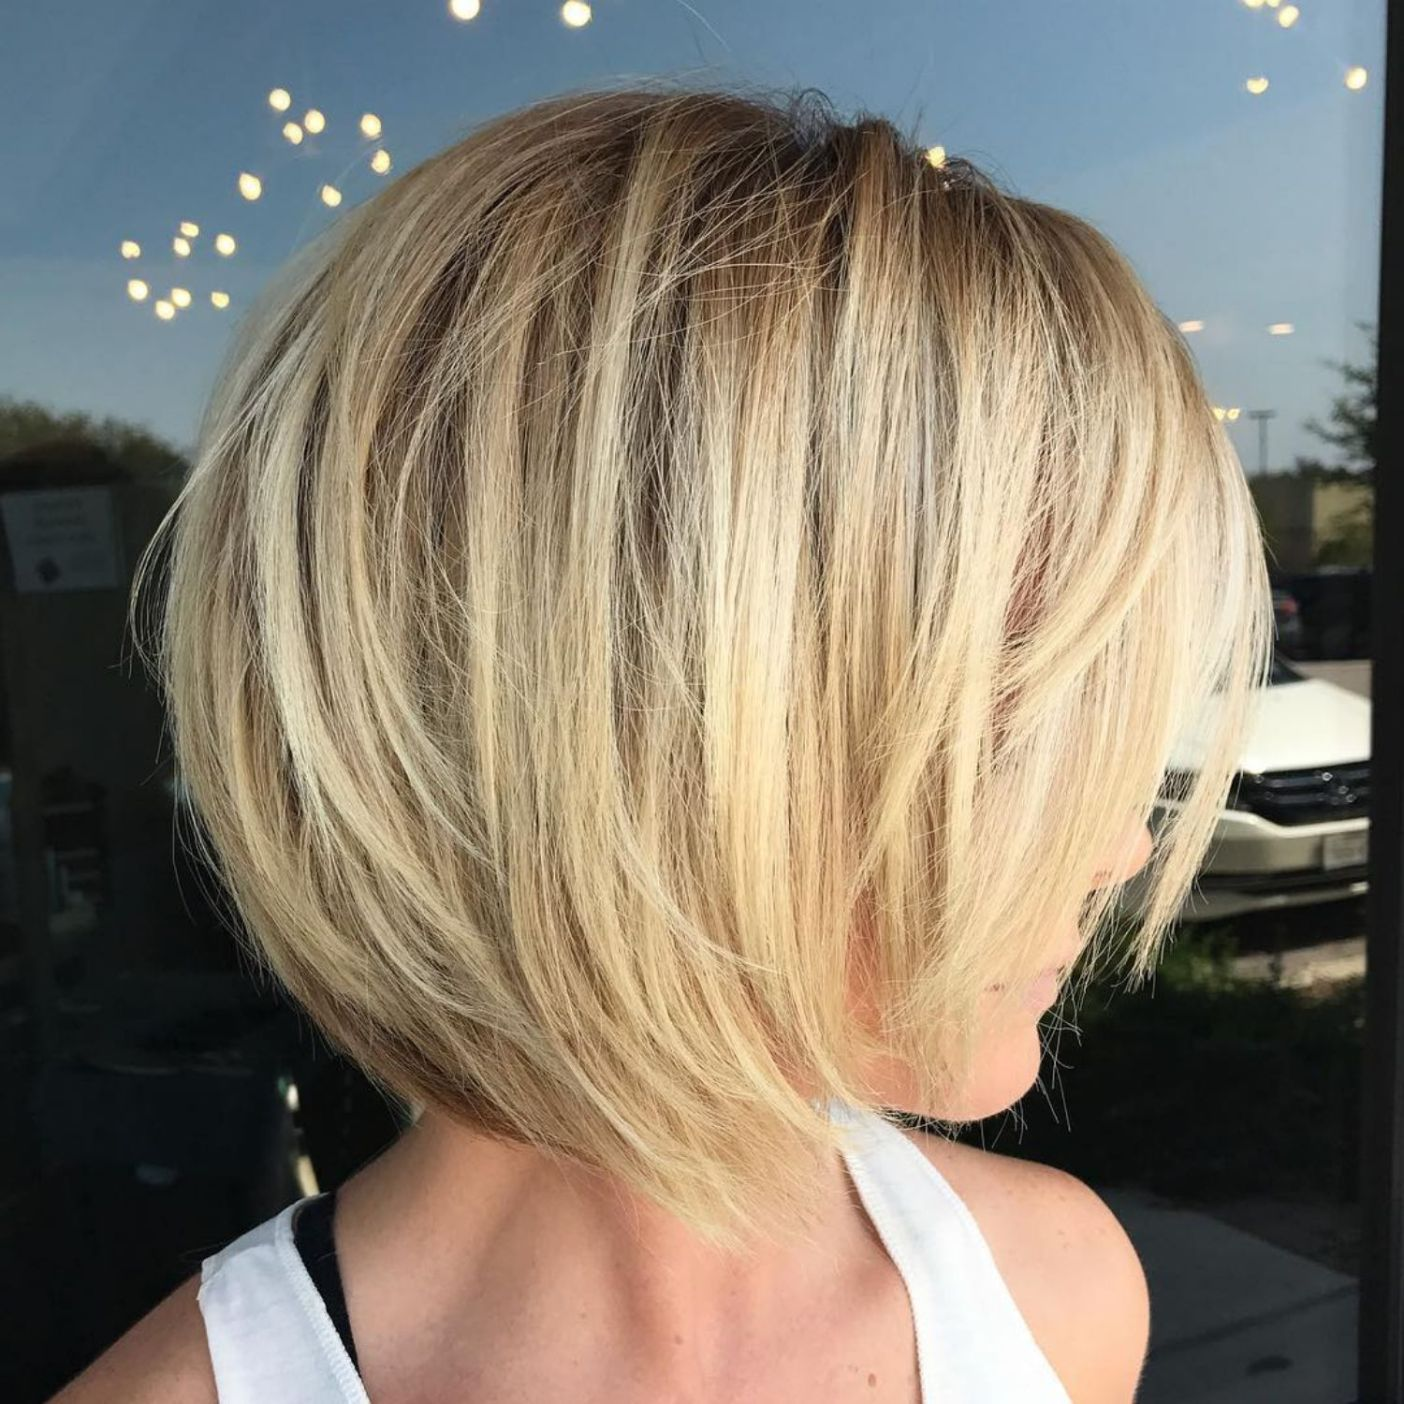 60 best short bob haircuts and hairstyles for women | my